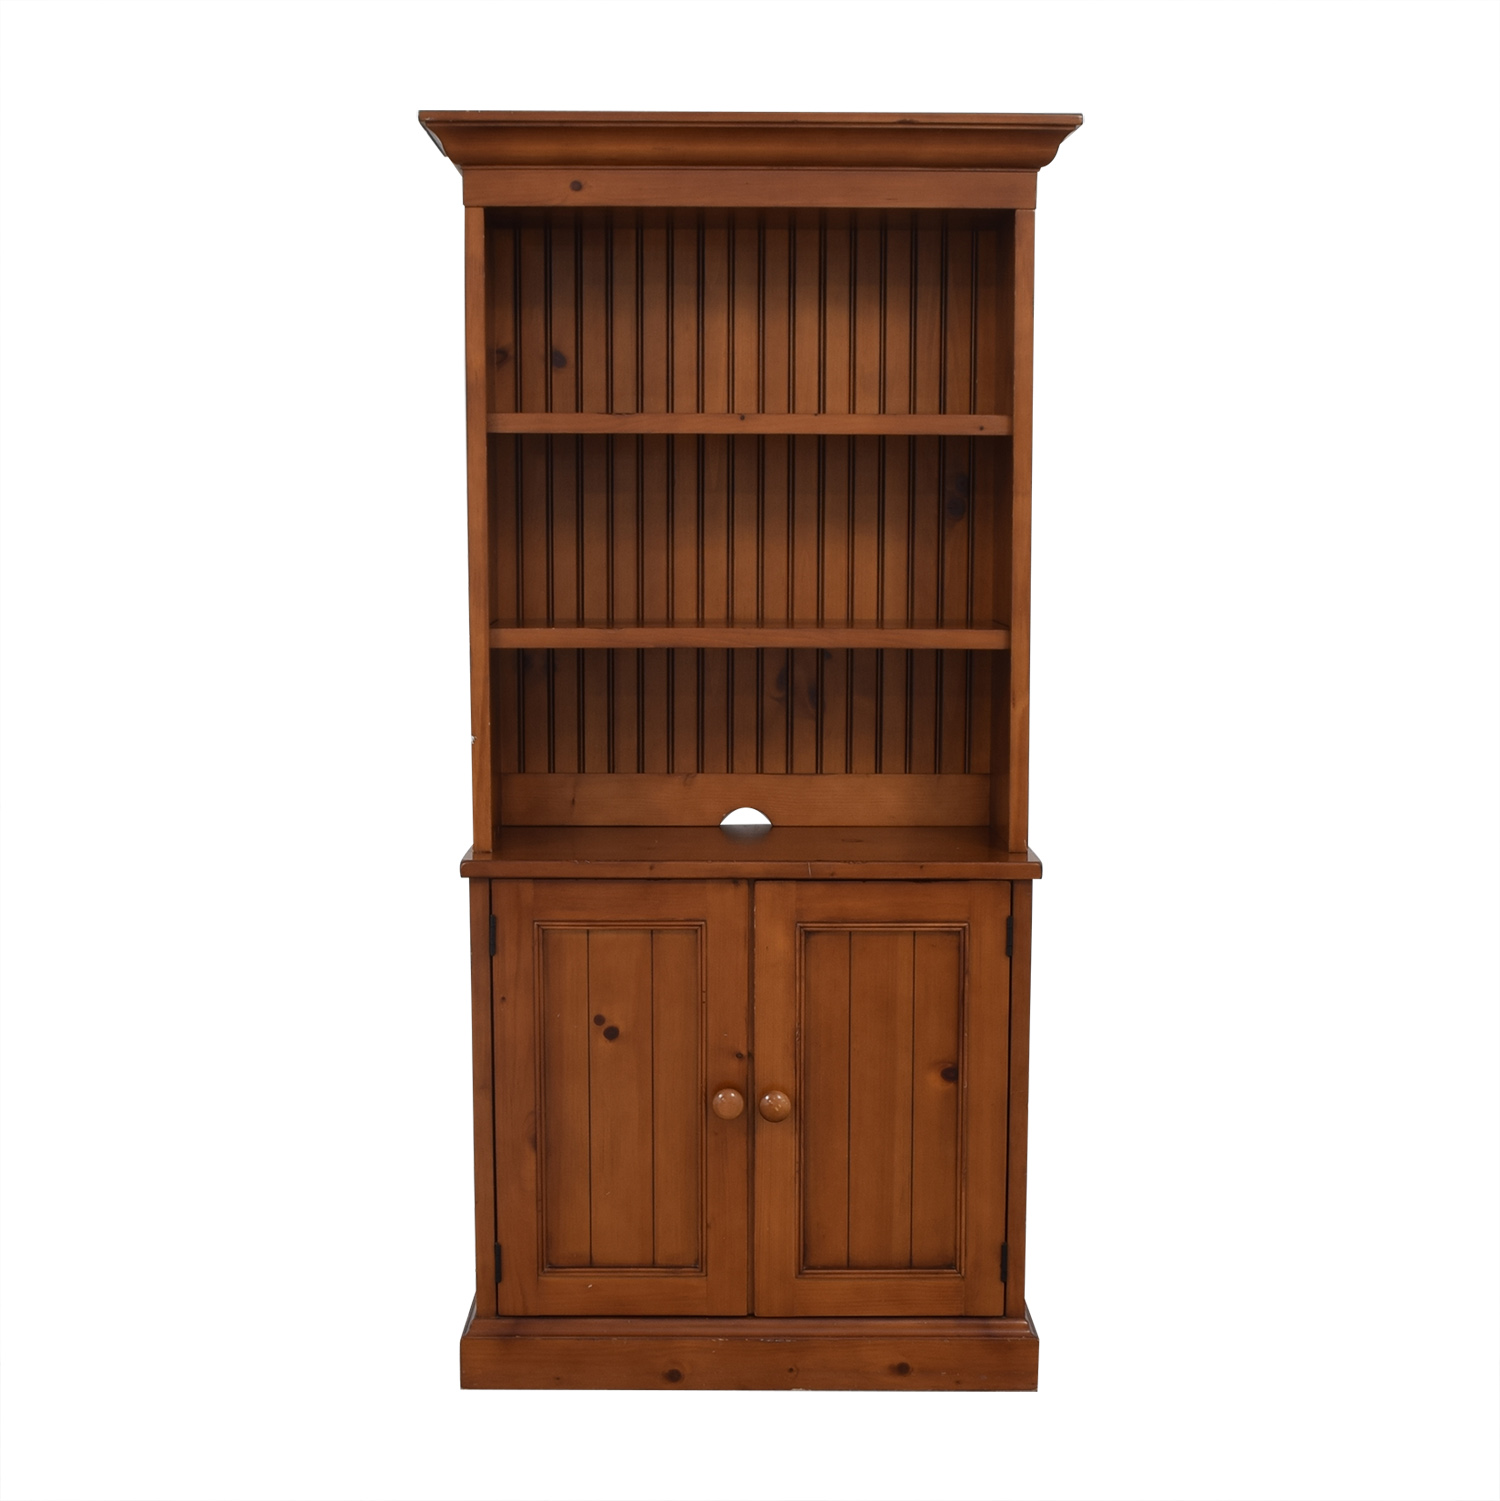 Pottery Barn Kids Pottery Barn Kids Cabinet and Hutch brown